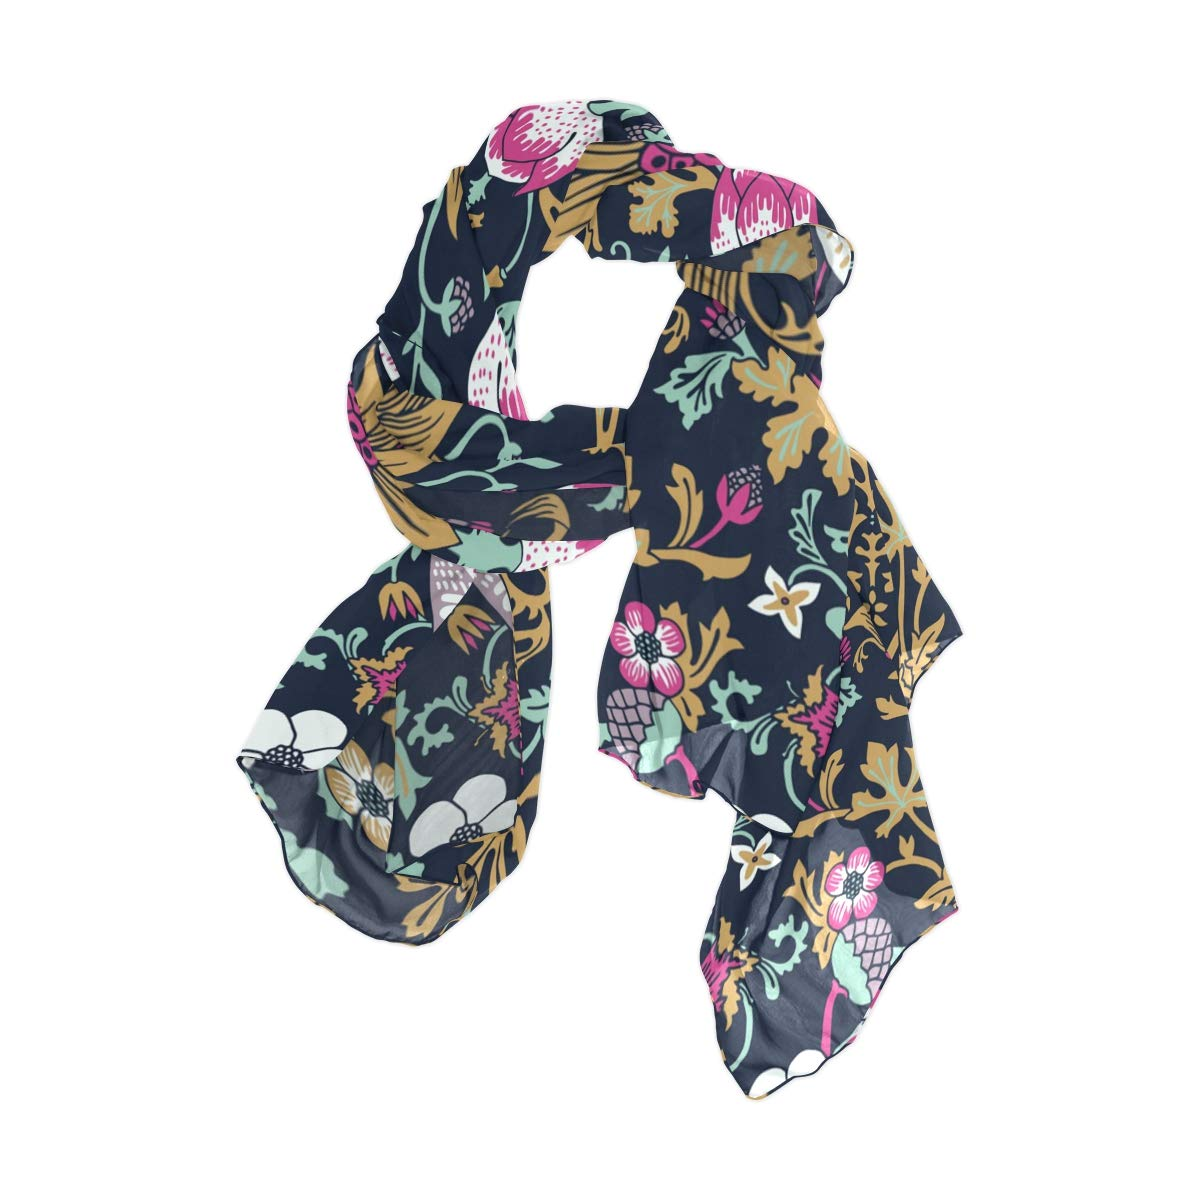 163366791e8 AHOMY Women s Lightweight Scarf Shawl Magic Forest Bird Flower Polyester  Long Fashionable Wrap for Ladies and Girls at Amazon Women s Clothing store